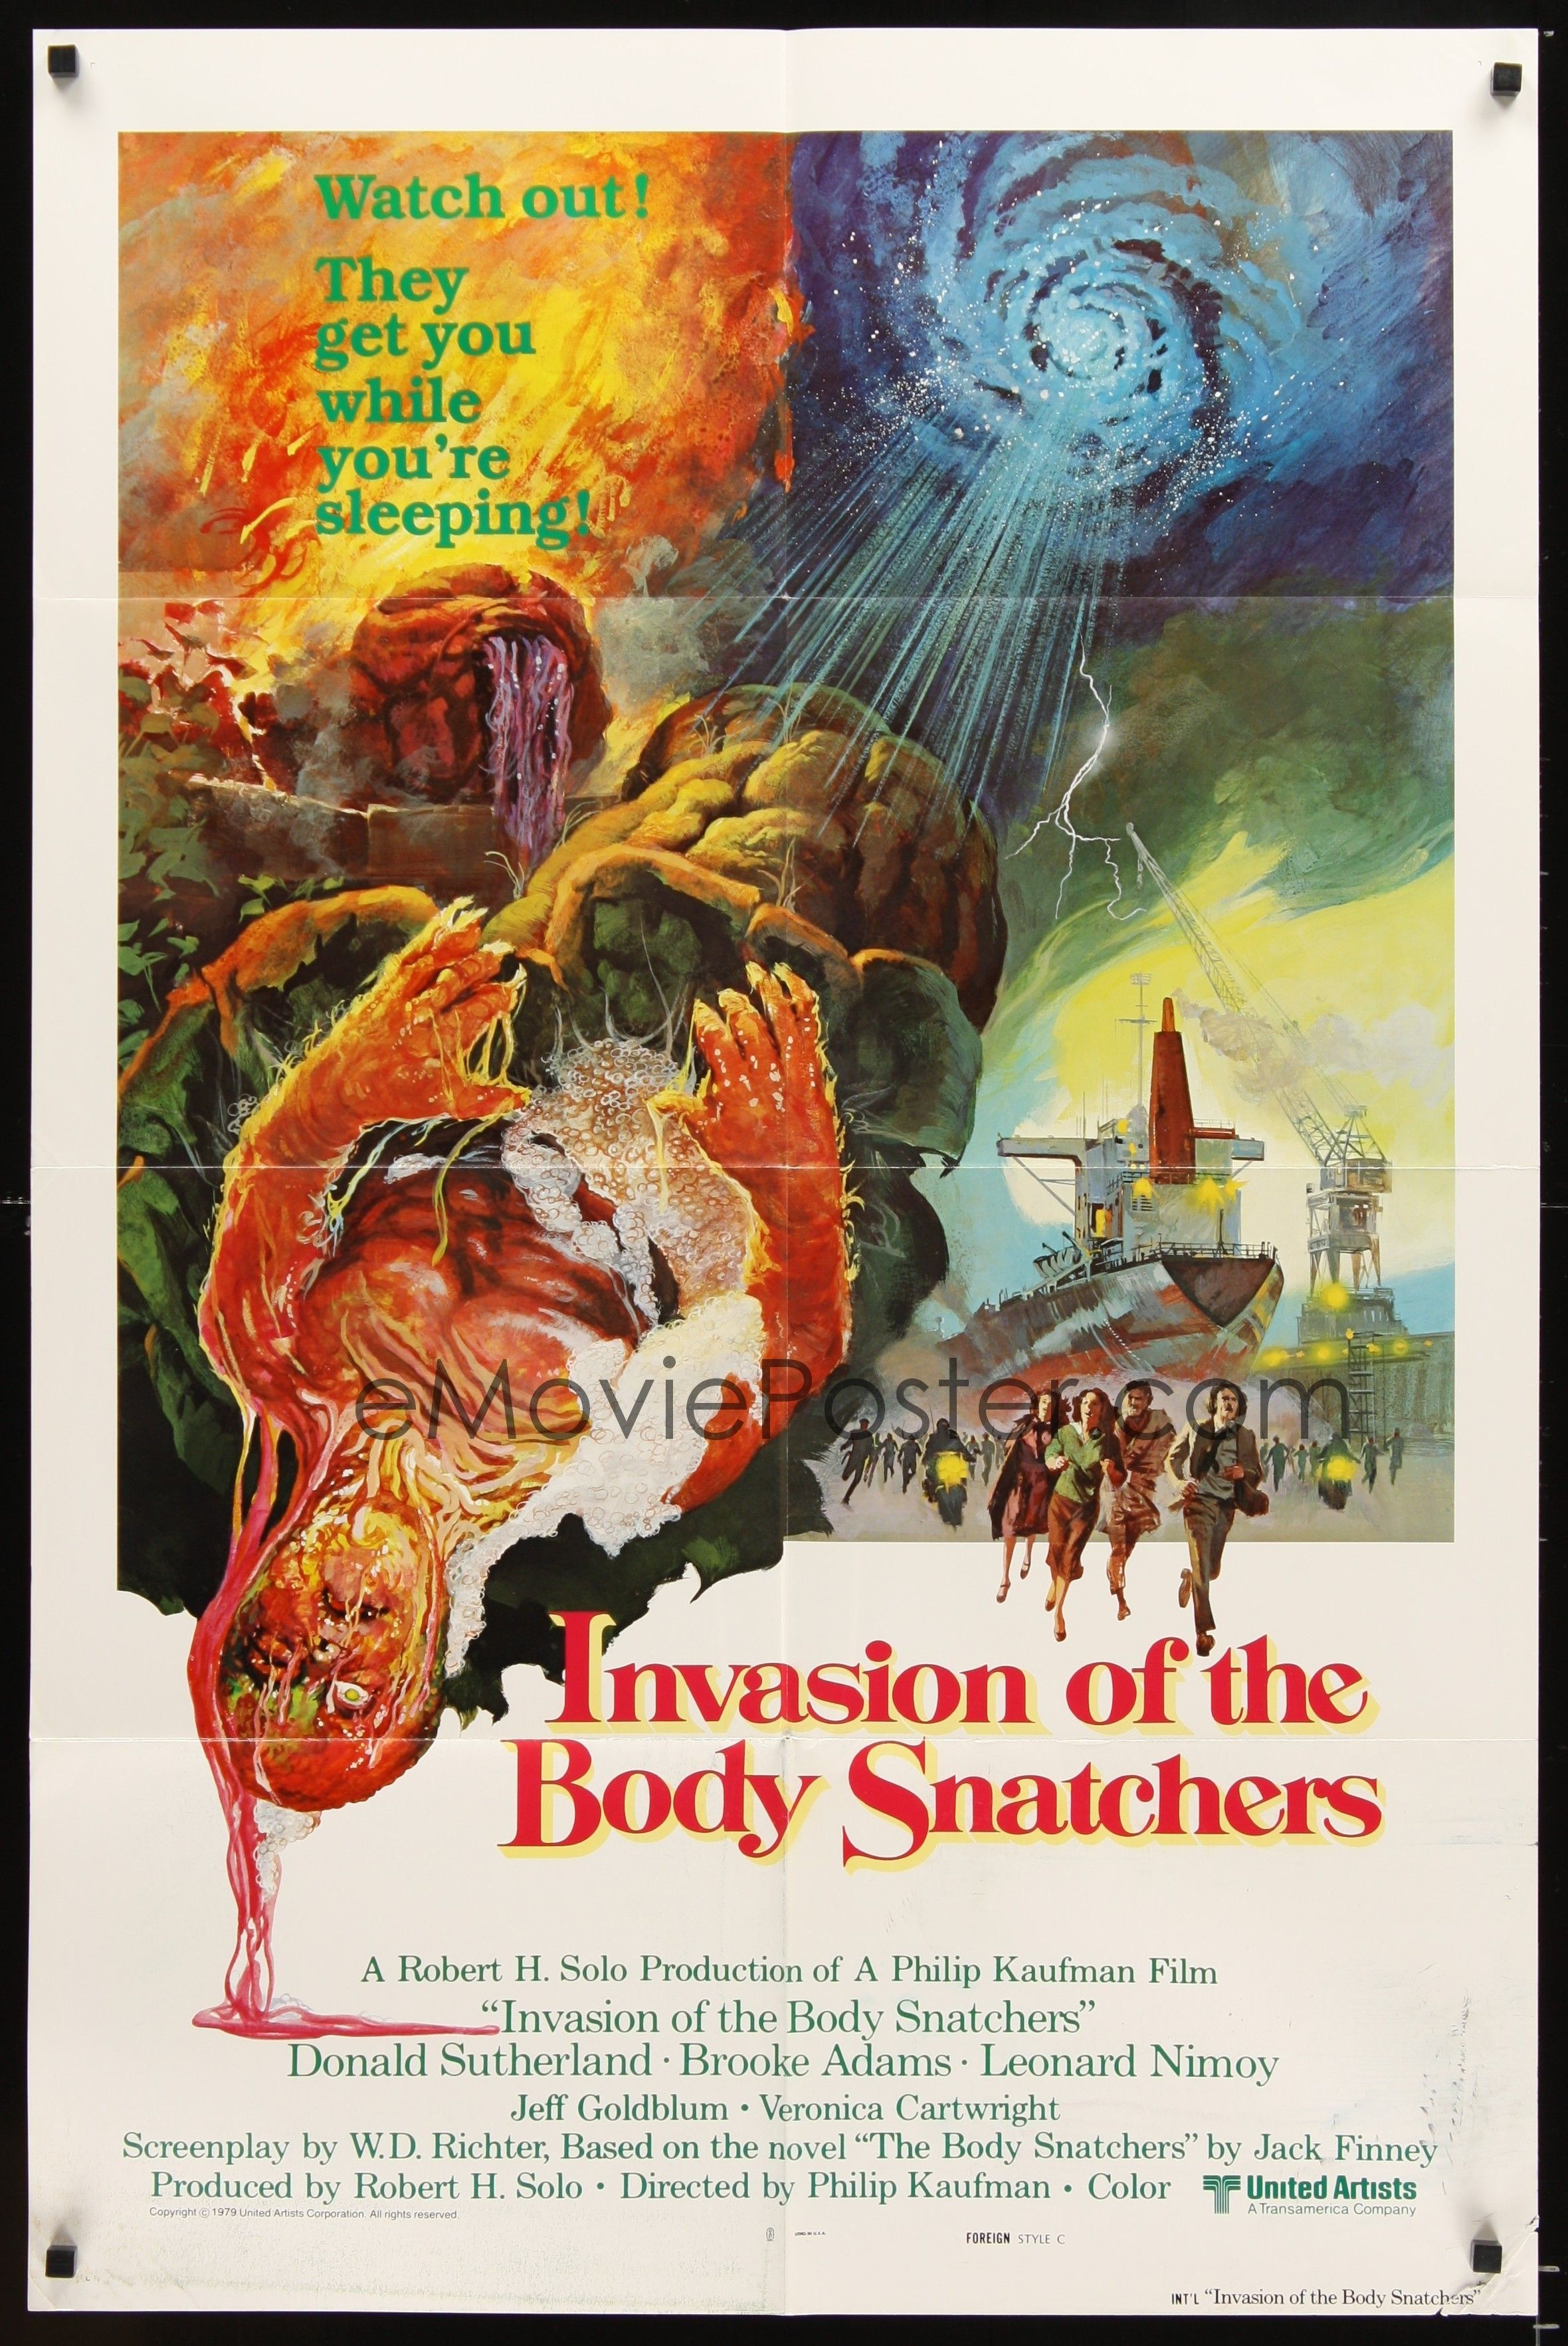 INVASION OF THE BODY SNATCHERS (1978) - Donald Sutherland - Brooke Adams - Leonard Nimoy - Jeff Goldblum - Veronica Cartwright - Based on novel, 'The Body Snatchers' by Jack Finney - Directed by Philip Kaufman - United Artists - Movie Poster.